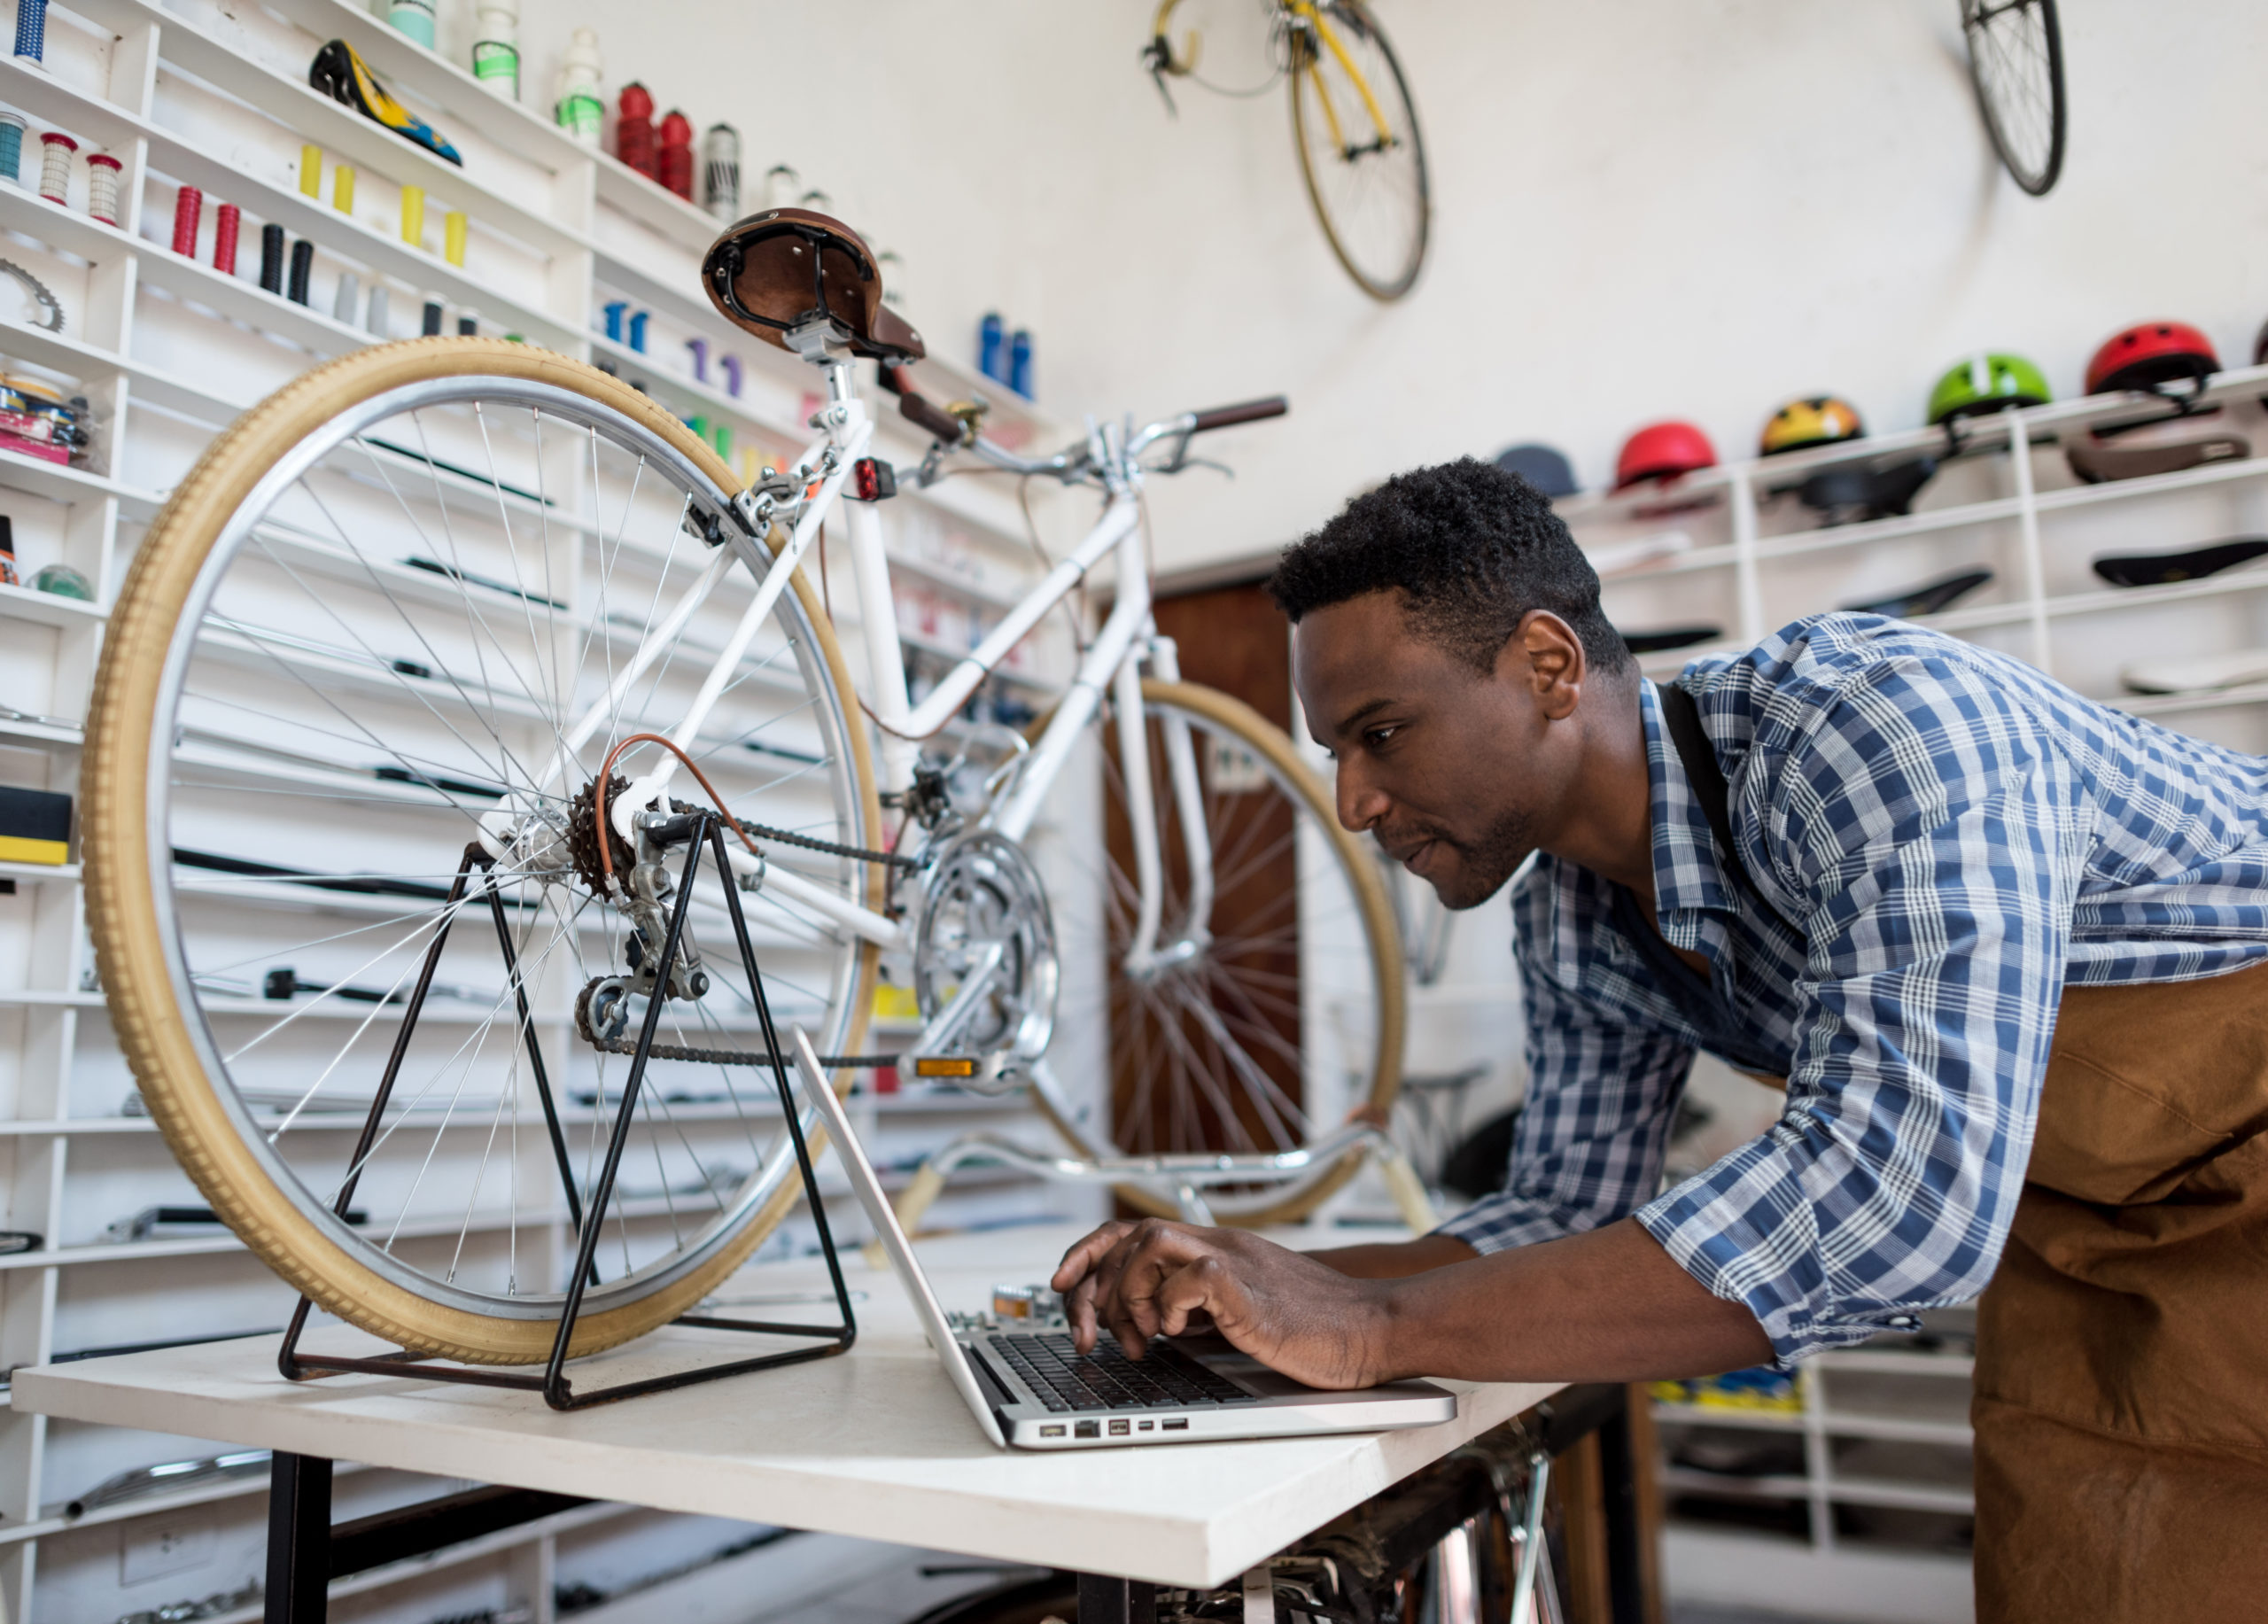 A man working on a bike in his shop.